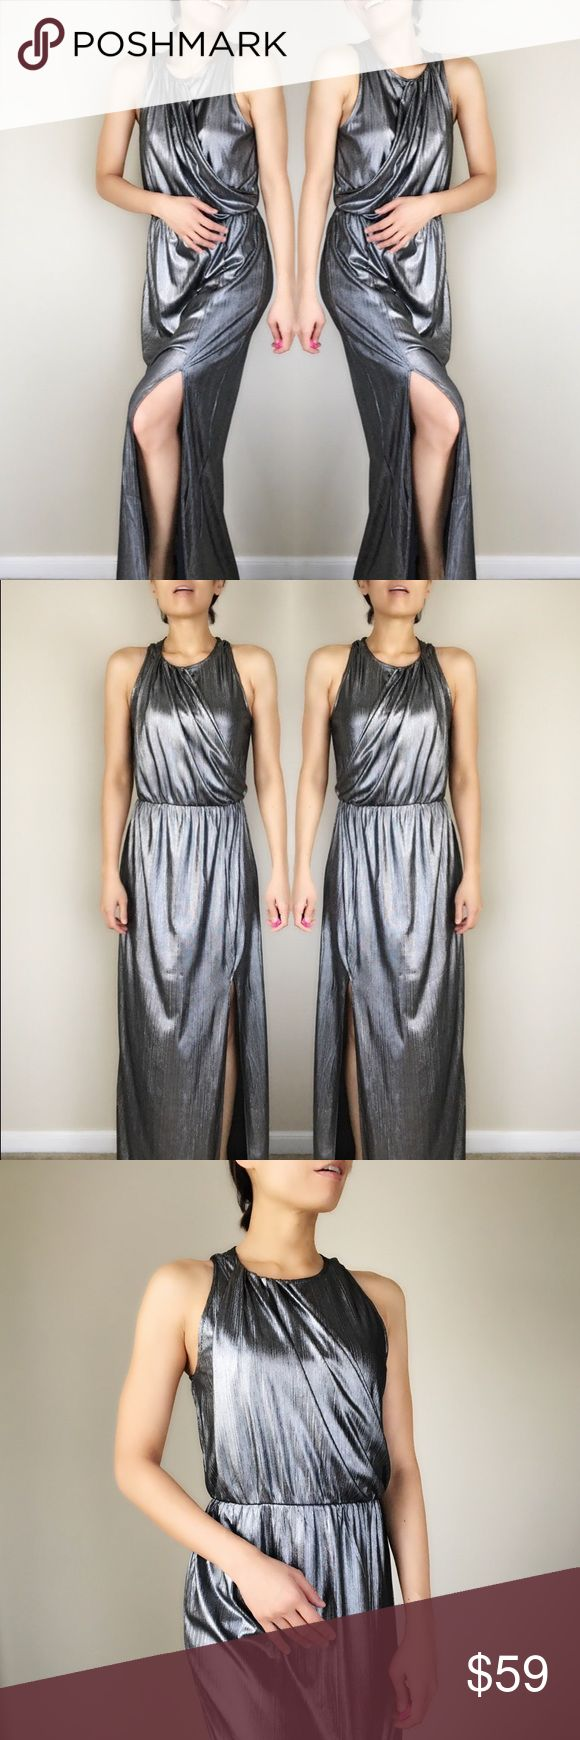 """New York Metallic long dress Elegant classy modern and tasteful metallic long dress with Greek gold. Elastane waist for contouring. Flows drop long dress with open slot on one side. The fold fabric detail complement the body shape very well. The dress is lined inside. Back button. Length58.5"""", bust 16.5"""", waist 13.5."""" All measurement taken flat lay. 96%polyblend with 4%spandex. Lining 100%polyester. All eyes on you type of holiday  gathering event dress. 👉🏼Follow me on  📸INSTAGRAM…"""